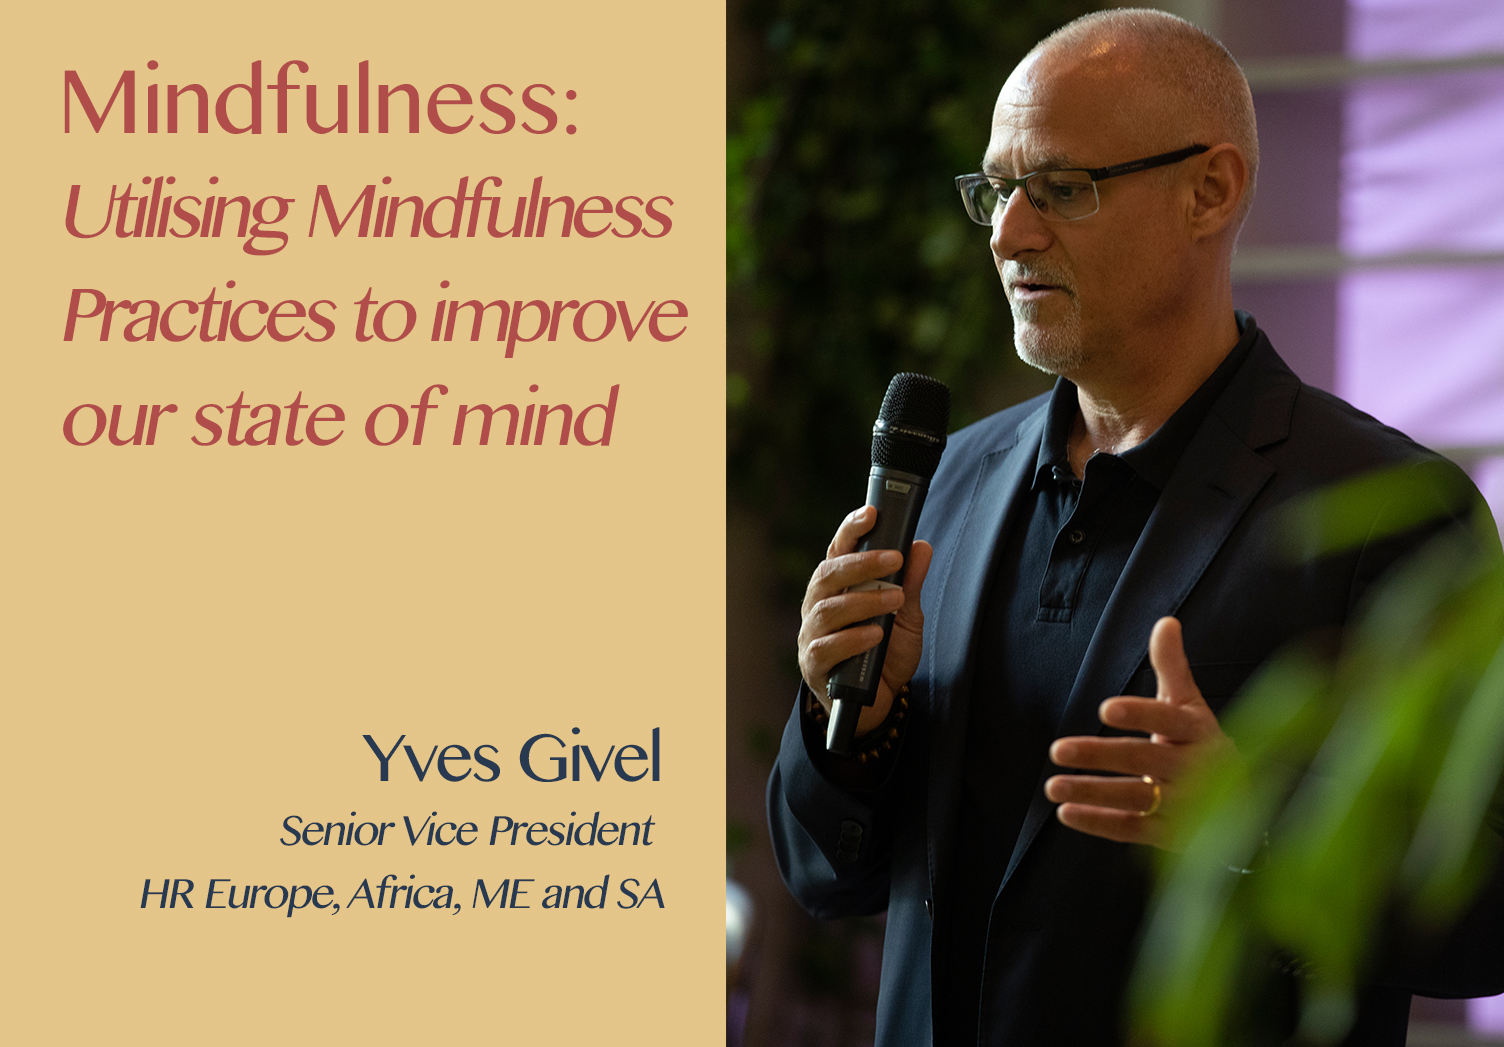 Hospitality Resilience Series on Mindfulness with Yves Givel